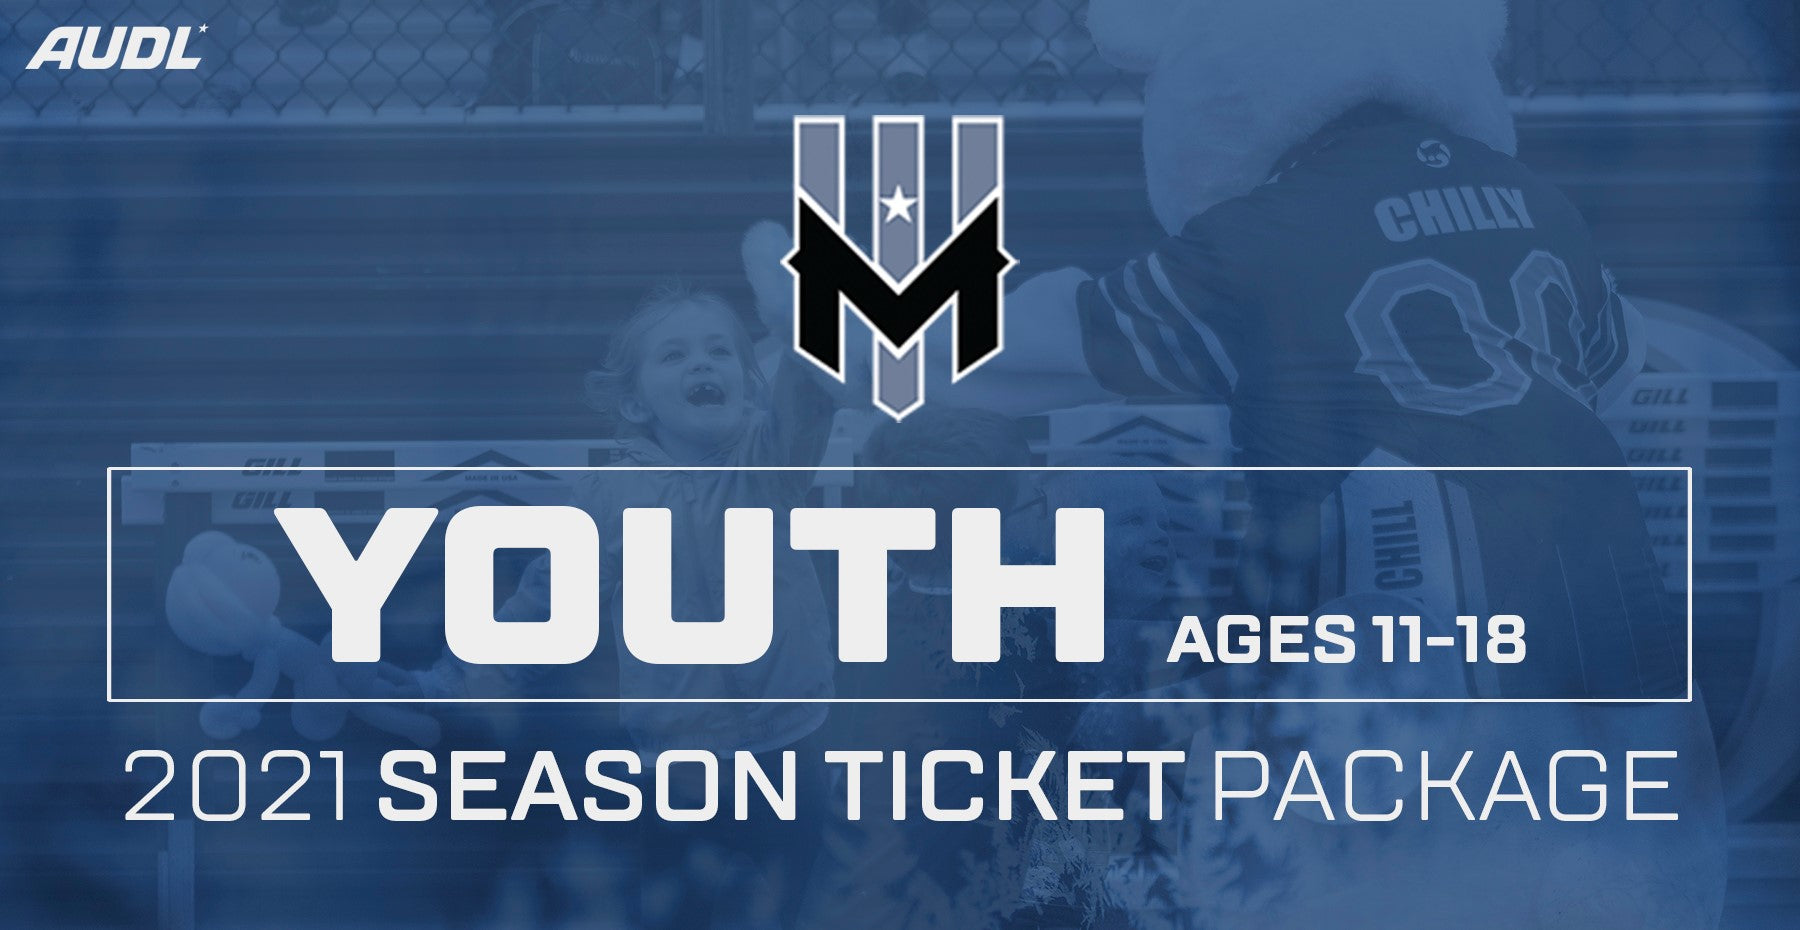 Wind Chill 2021 Season Ticket Package - Youth (Ages 11-18)